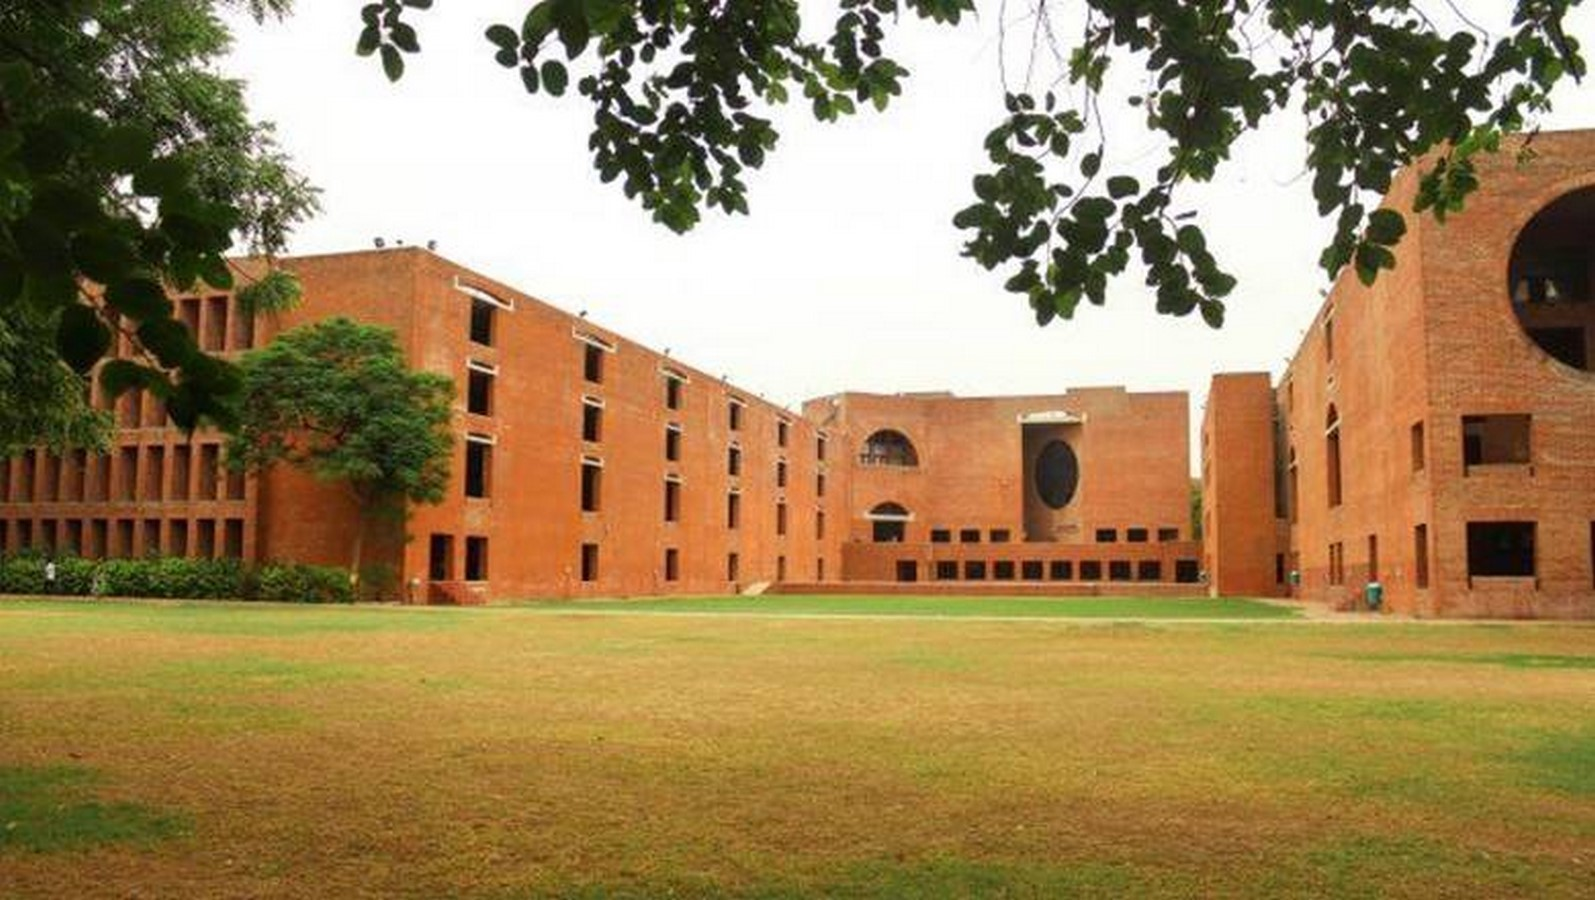 Indian architects that shaped the face of new India in post-independence era - Sheet7